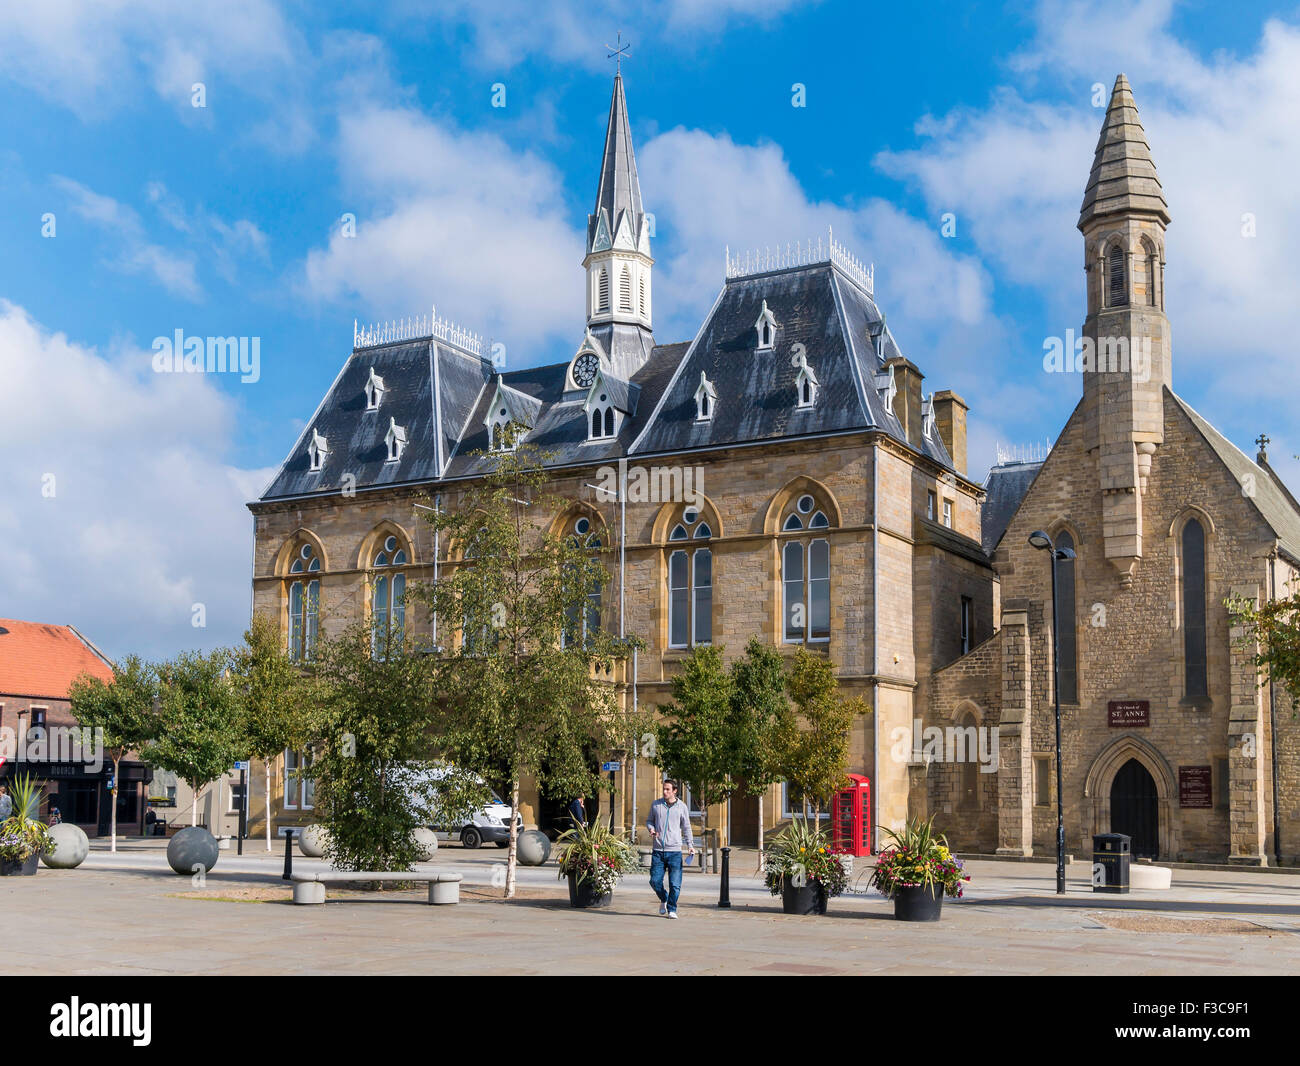 Town Hall and St Anne's church Market Place  Bishop Auckland, Co. Durham UK Stock Photo